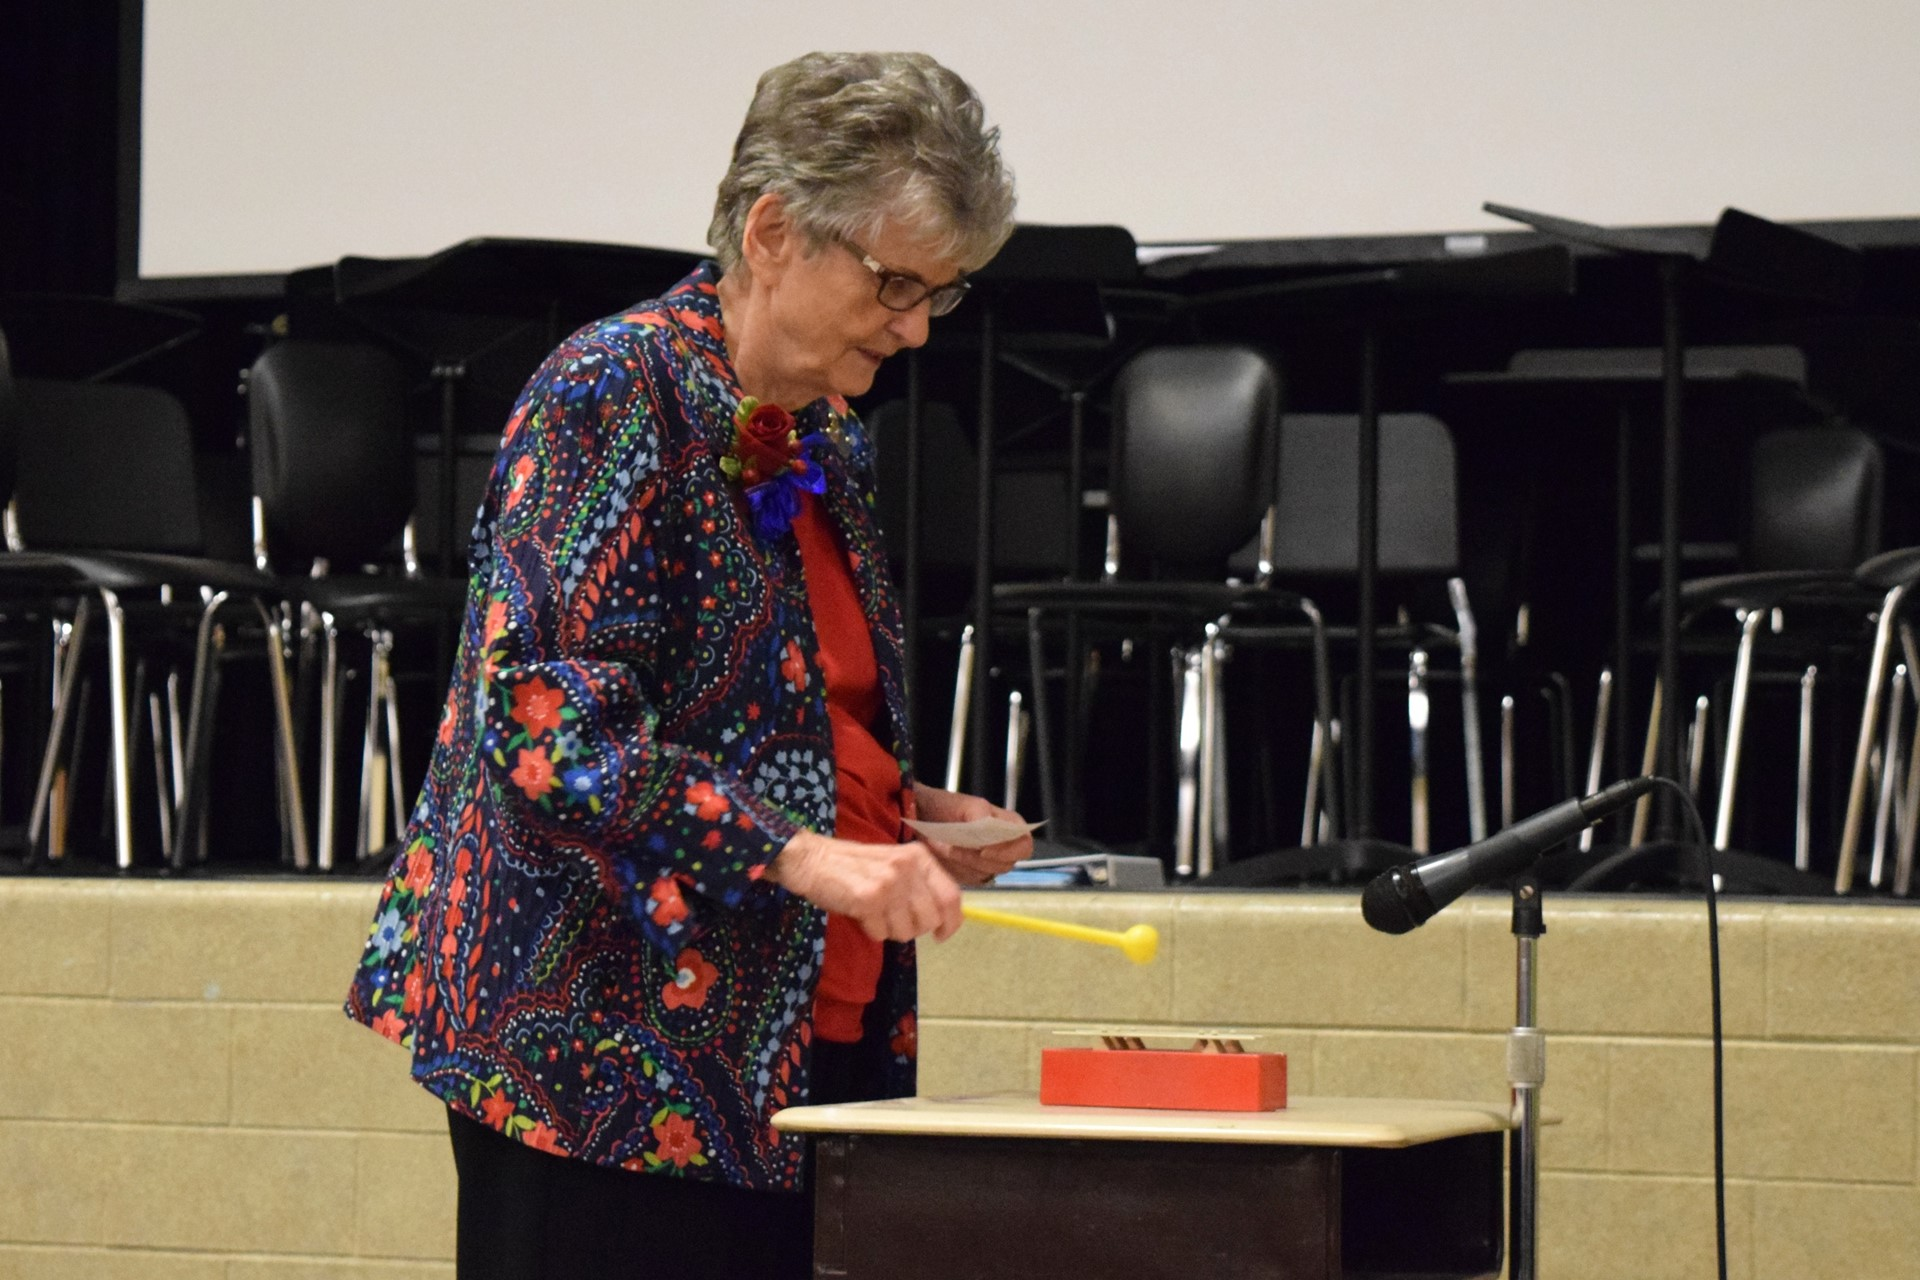 Longtime secretary Jane Schomburger plays the tone blocks during the Rogers Reunion: May 2016